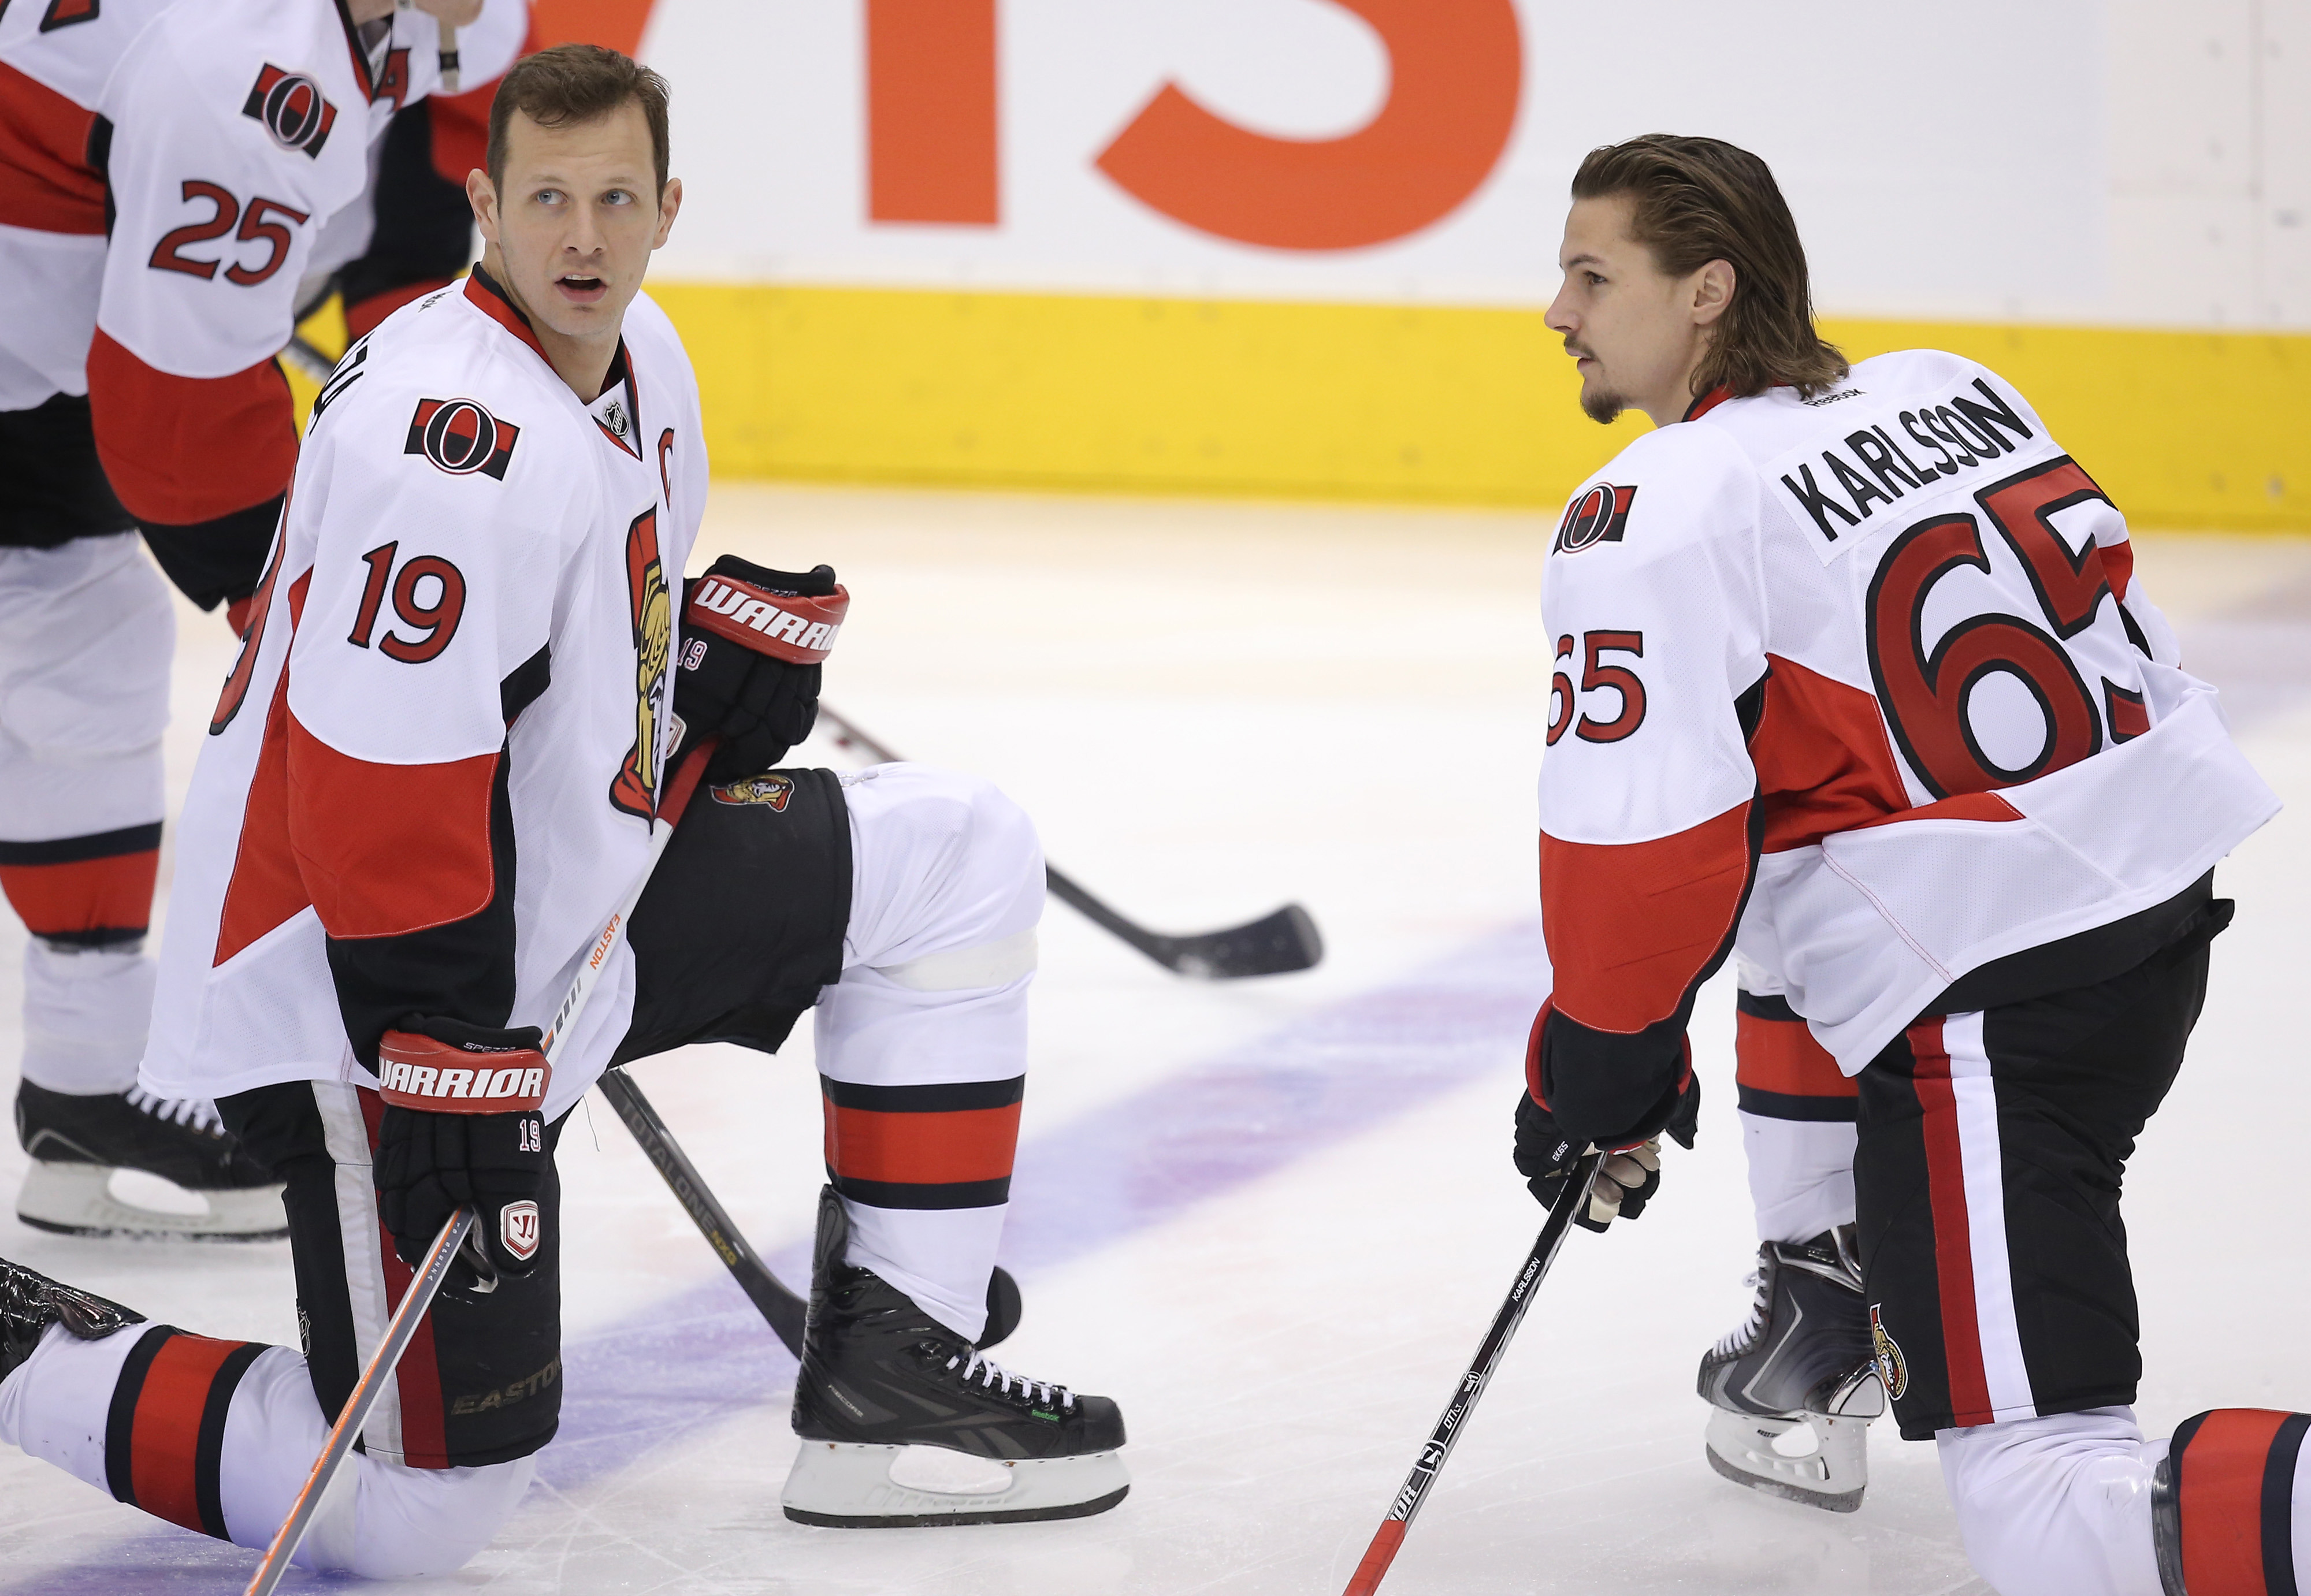 """Karlsson was probably like, """"Hey, if you won't shoot, I will."""" And Spezza was like, """"Okay, get open."""""""